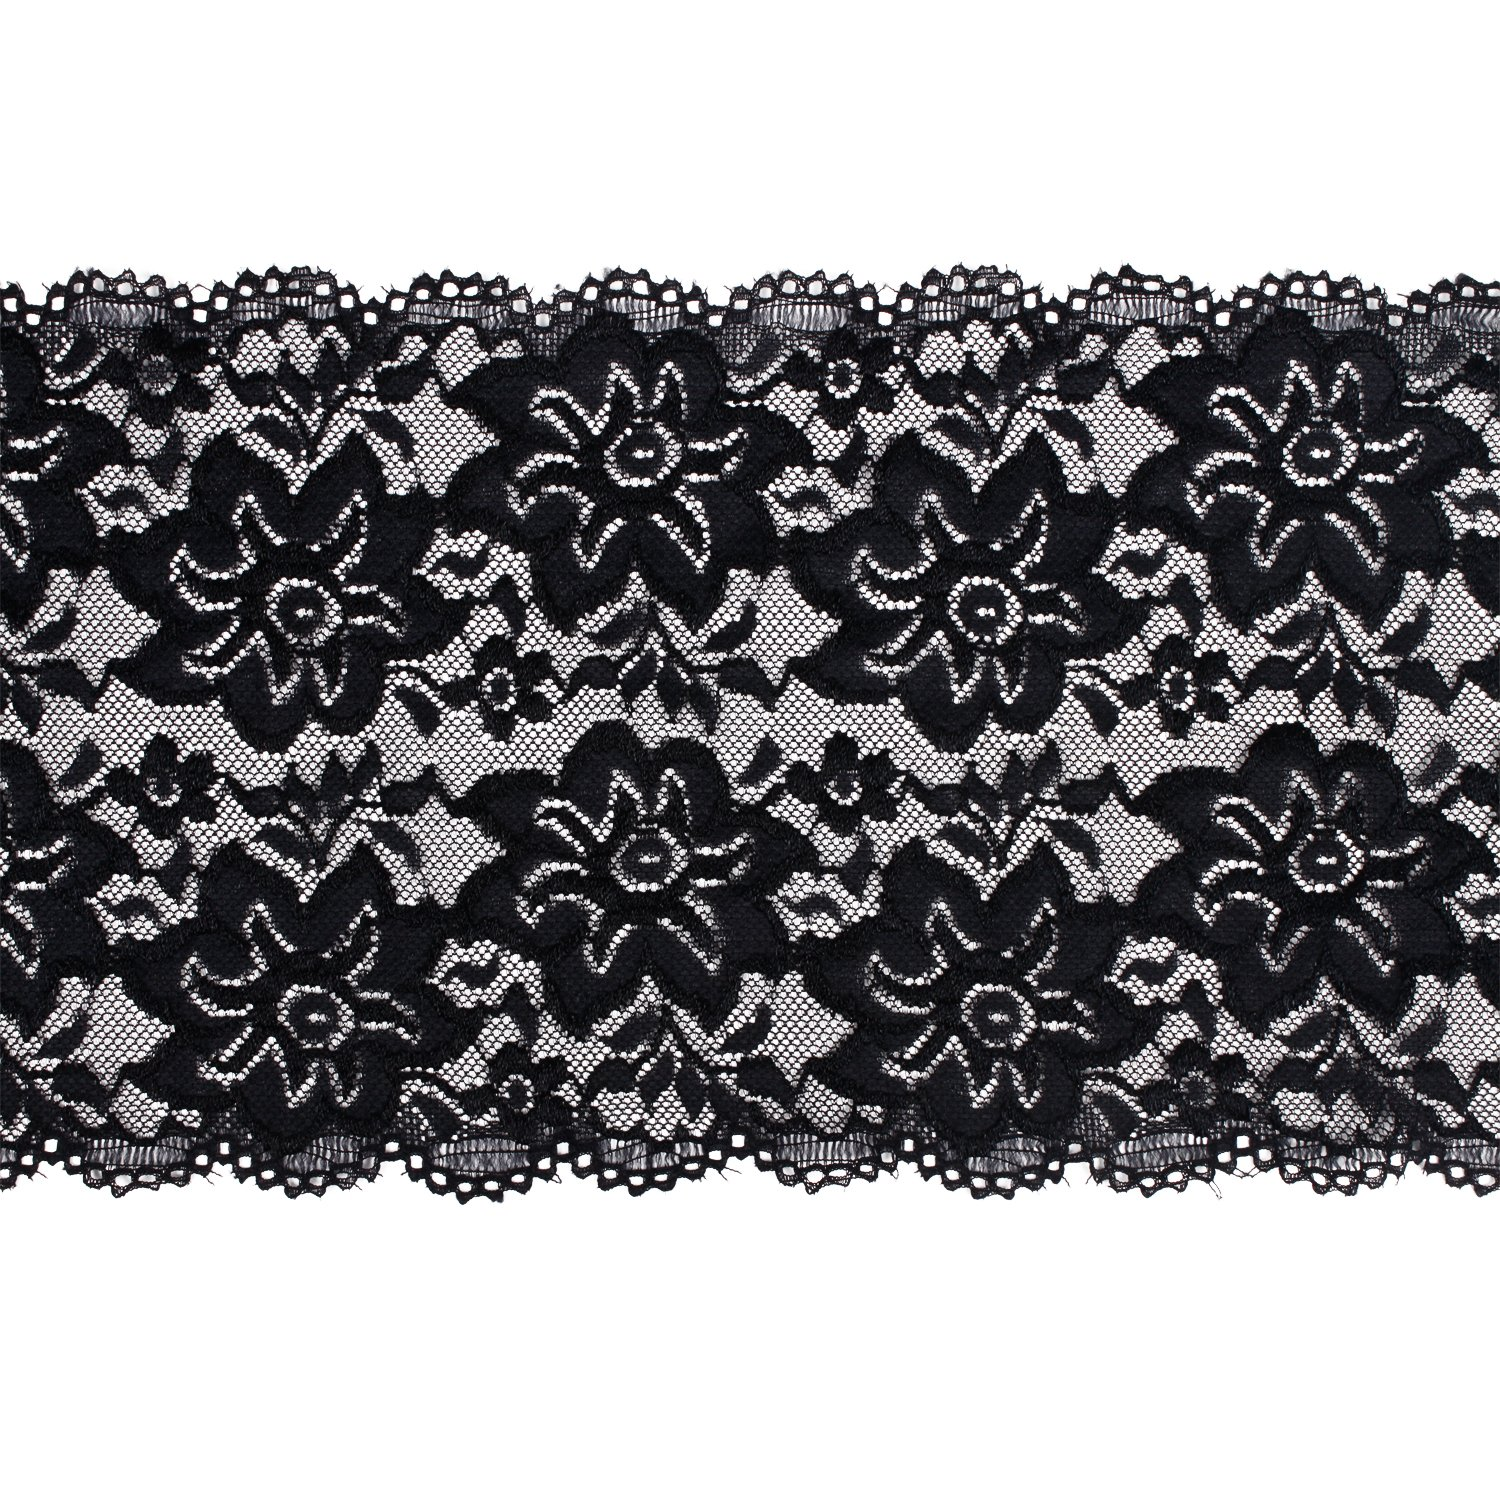 5 Yard Laribbons 6 Inch Black Embroidery Floral Stretchy Lace Elastic Trim Fabric for Garment And DIY Craft Supply